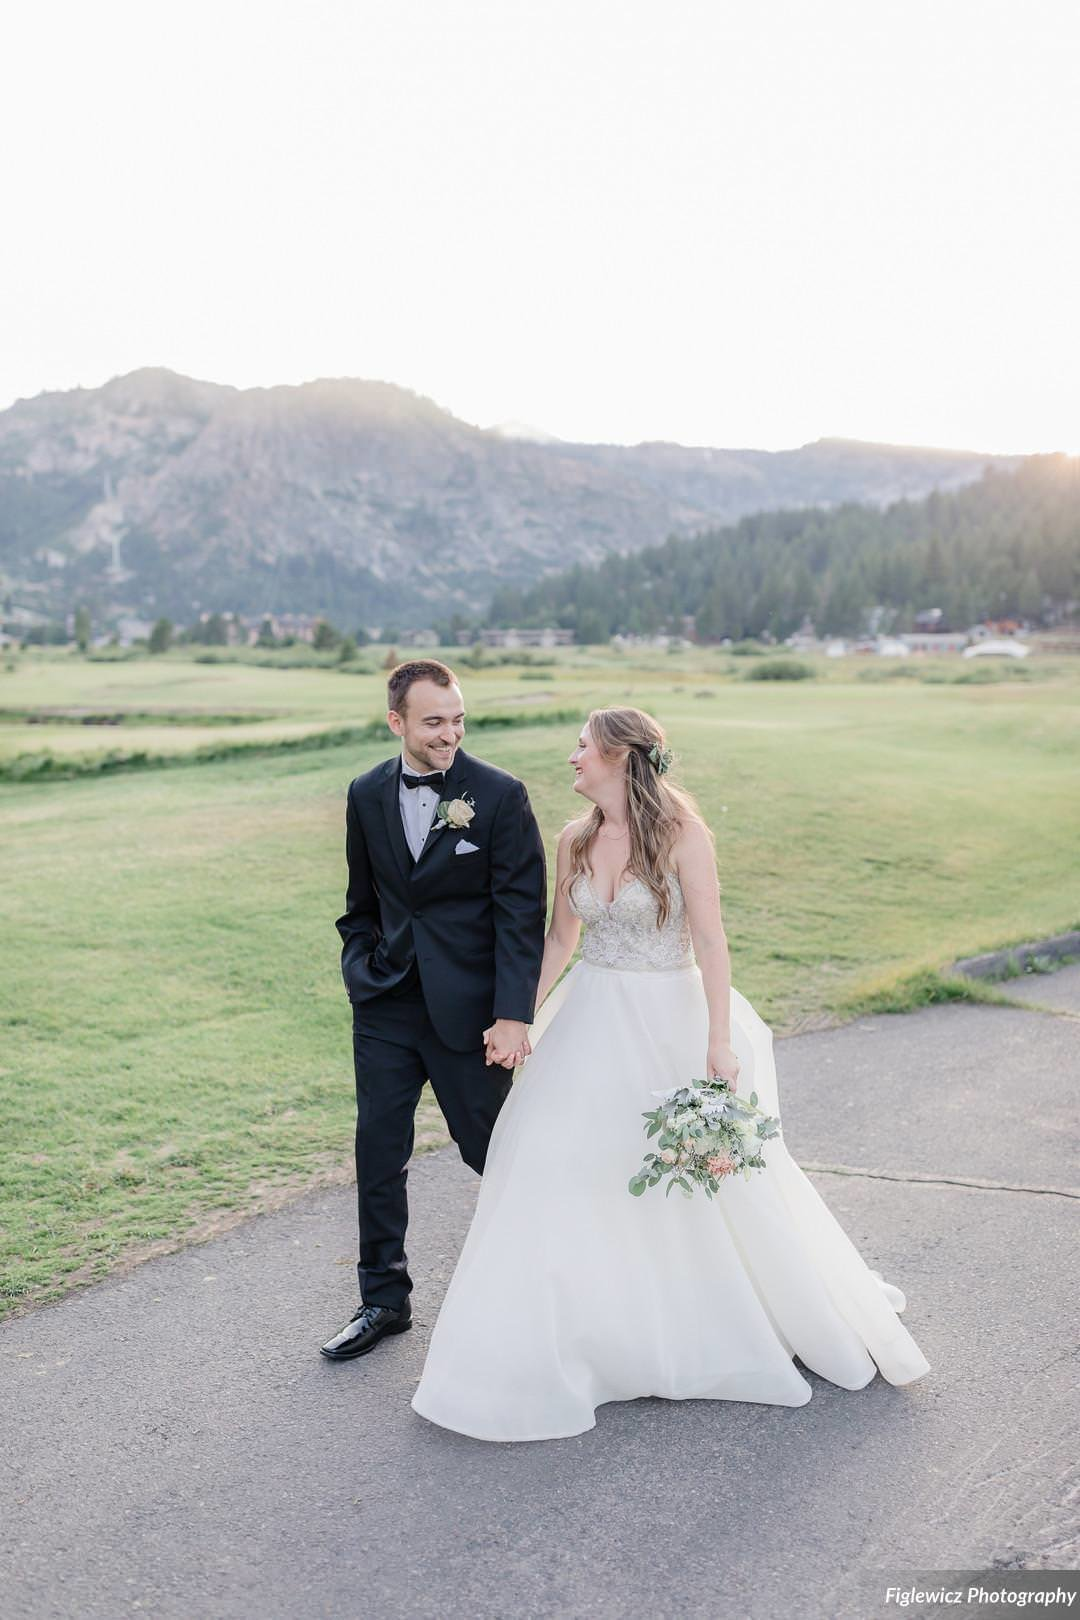 Garden_Tinsley_FiglewiczPhotography_LakeTahoeWeddingSquawValleyCreekTaylorBrendan00151_big